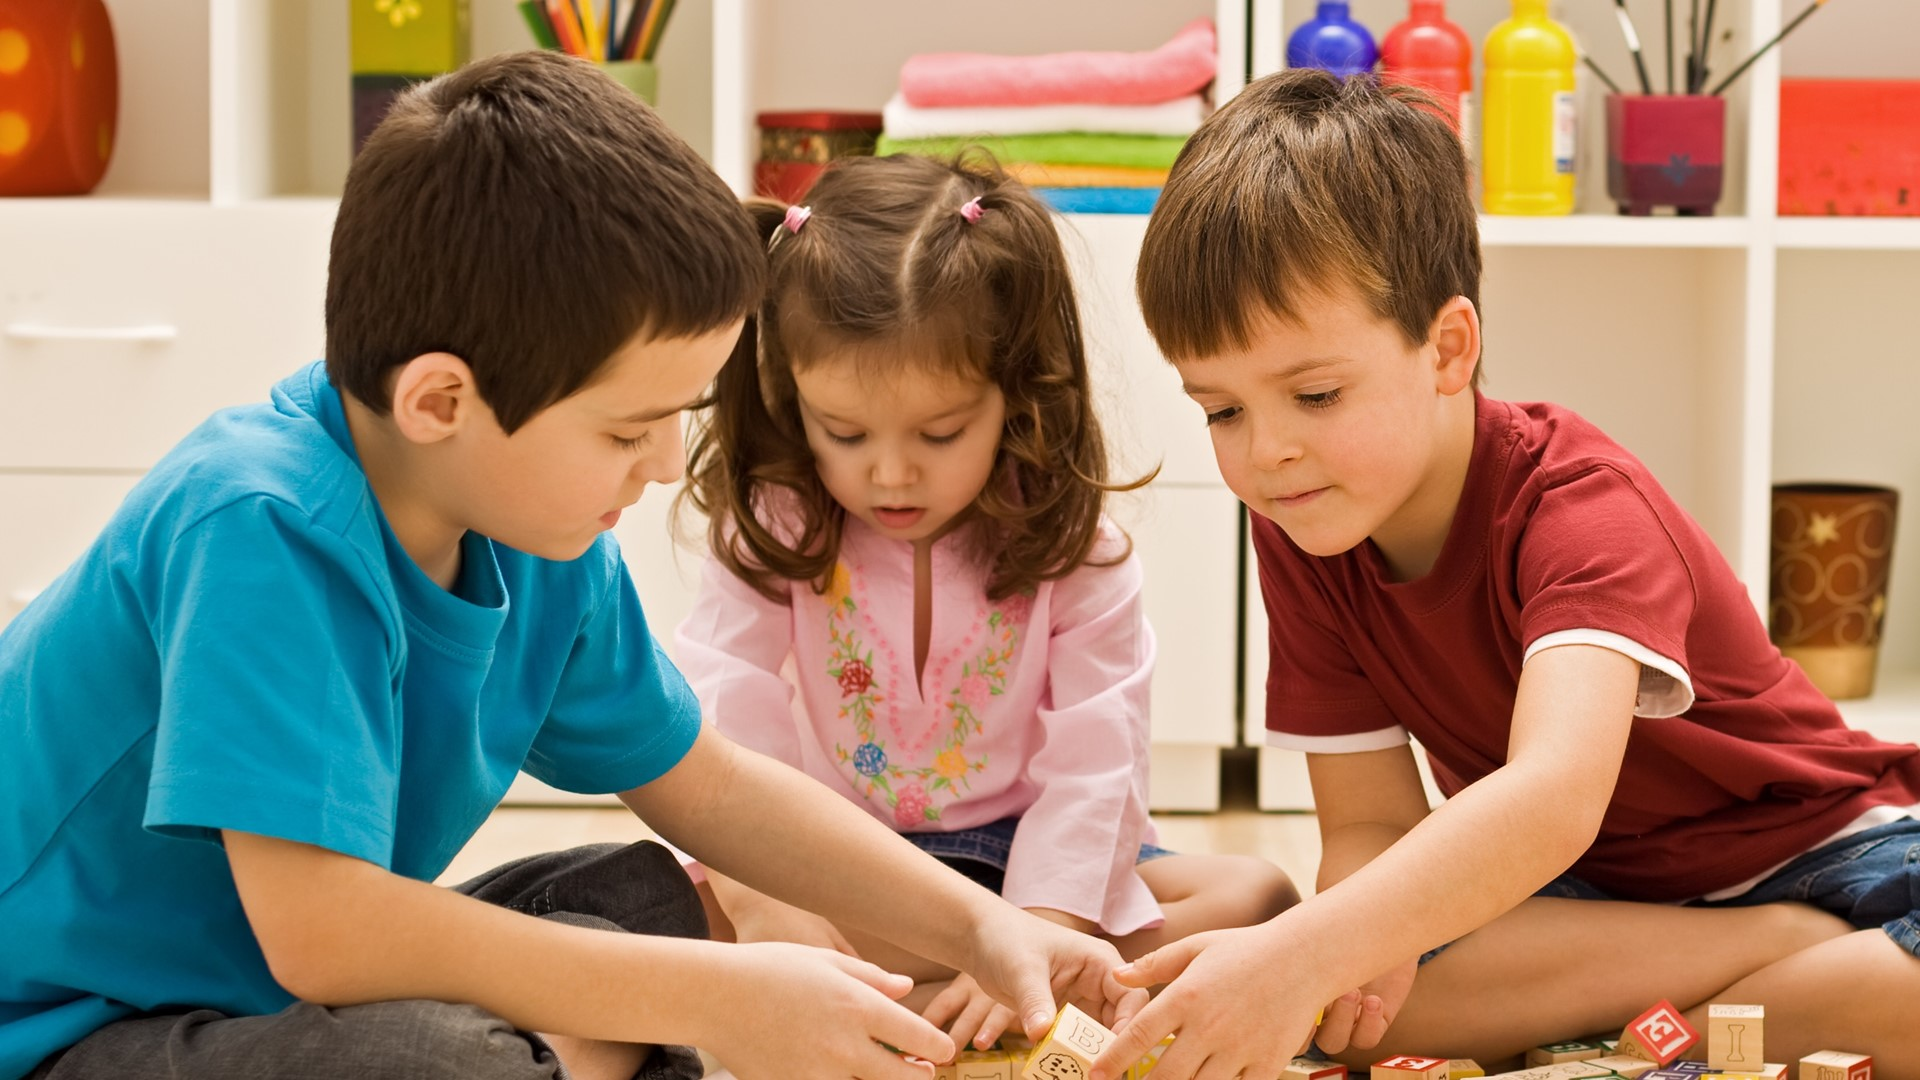 Keeping Our Kids Curious and Engaged at sierraclub.org